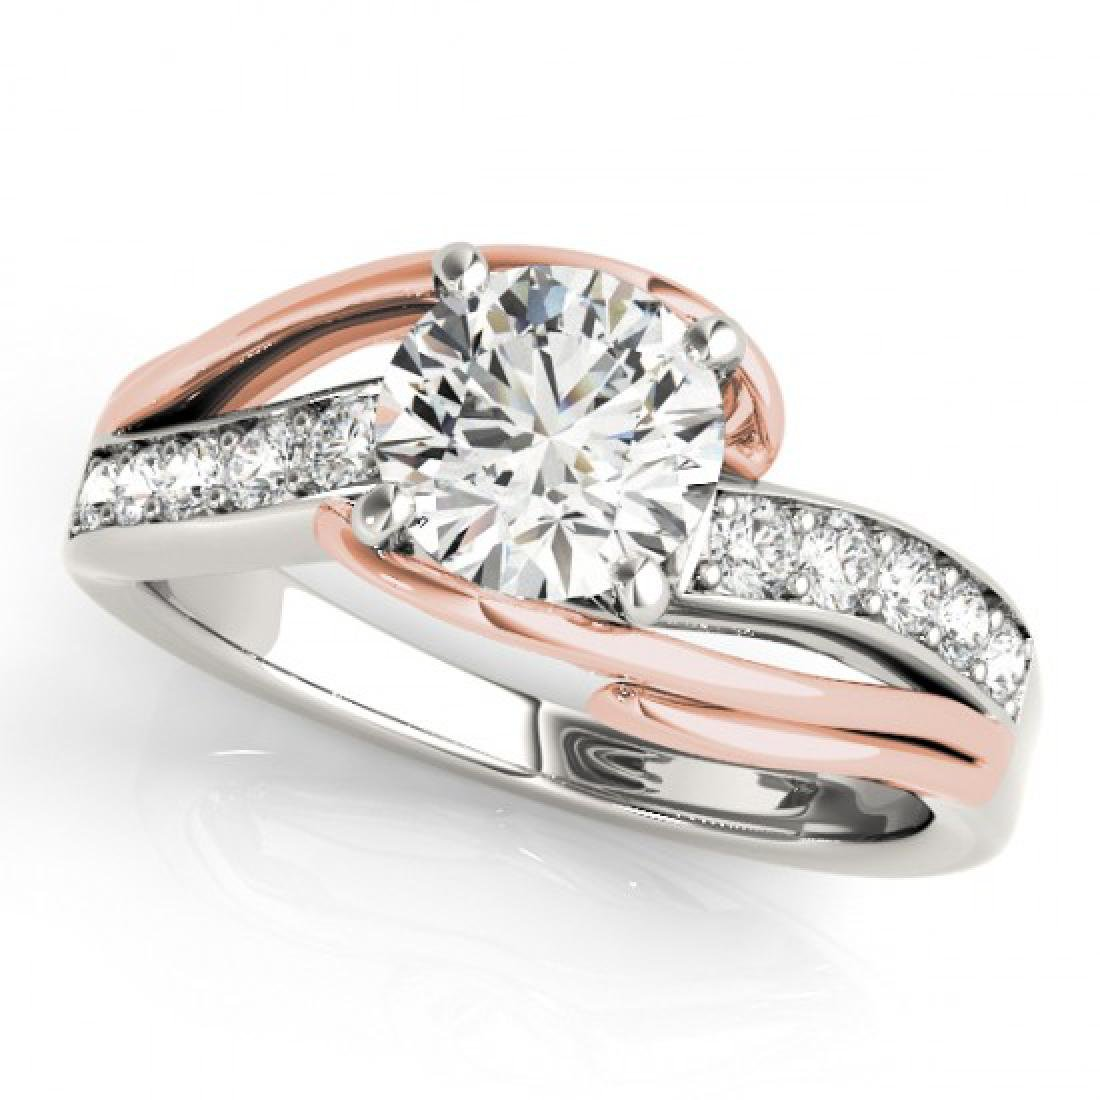 1 CTW Certified VS/SI Diamond Bypass Solitaire Ring 14K